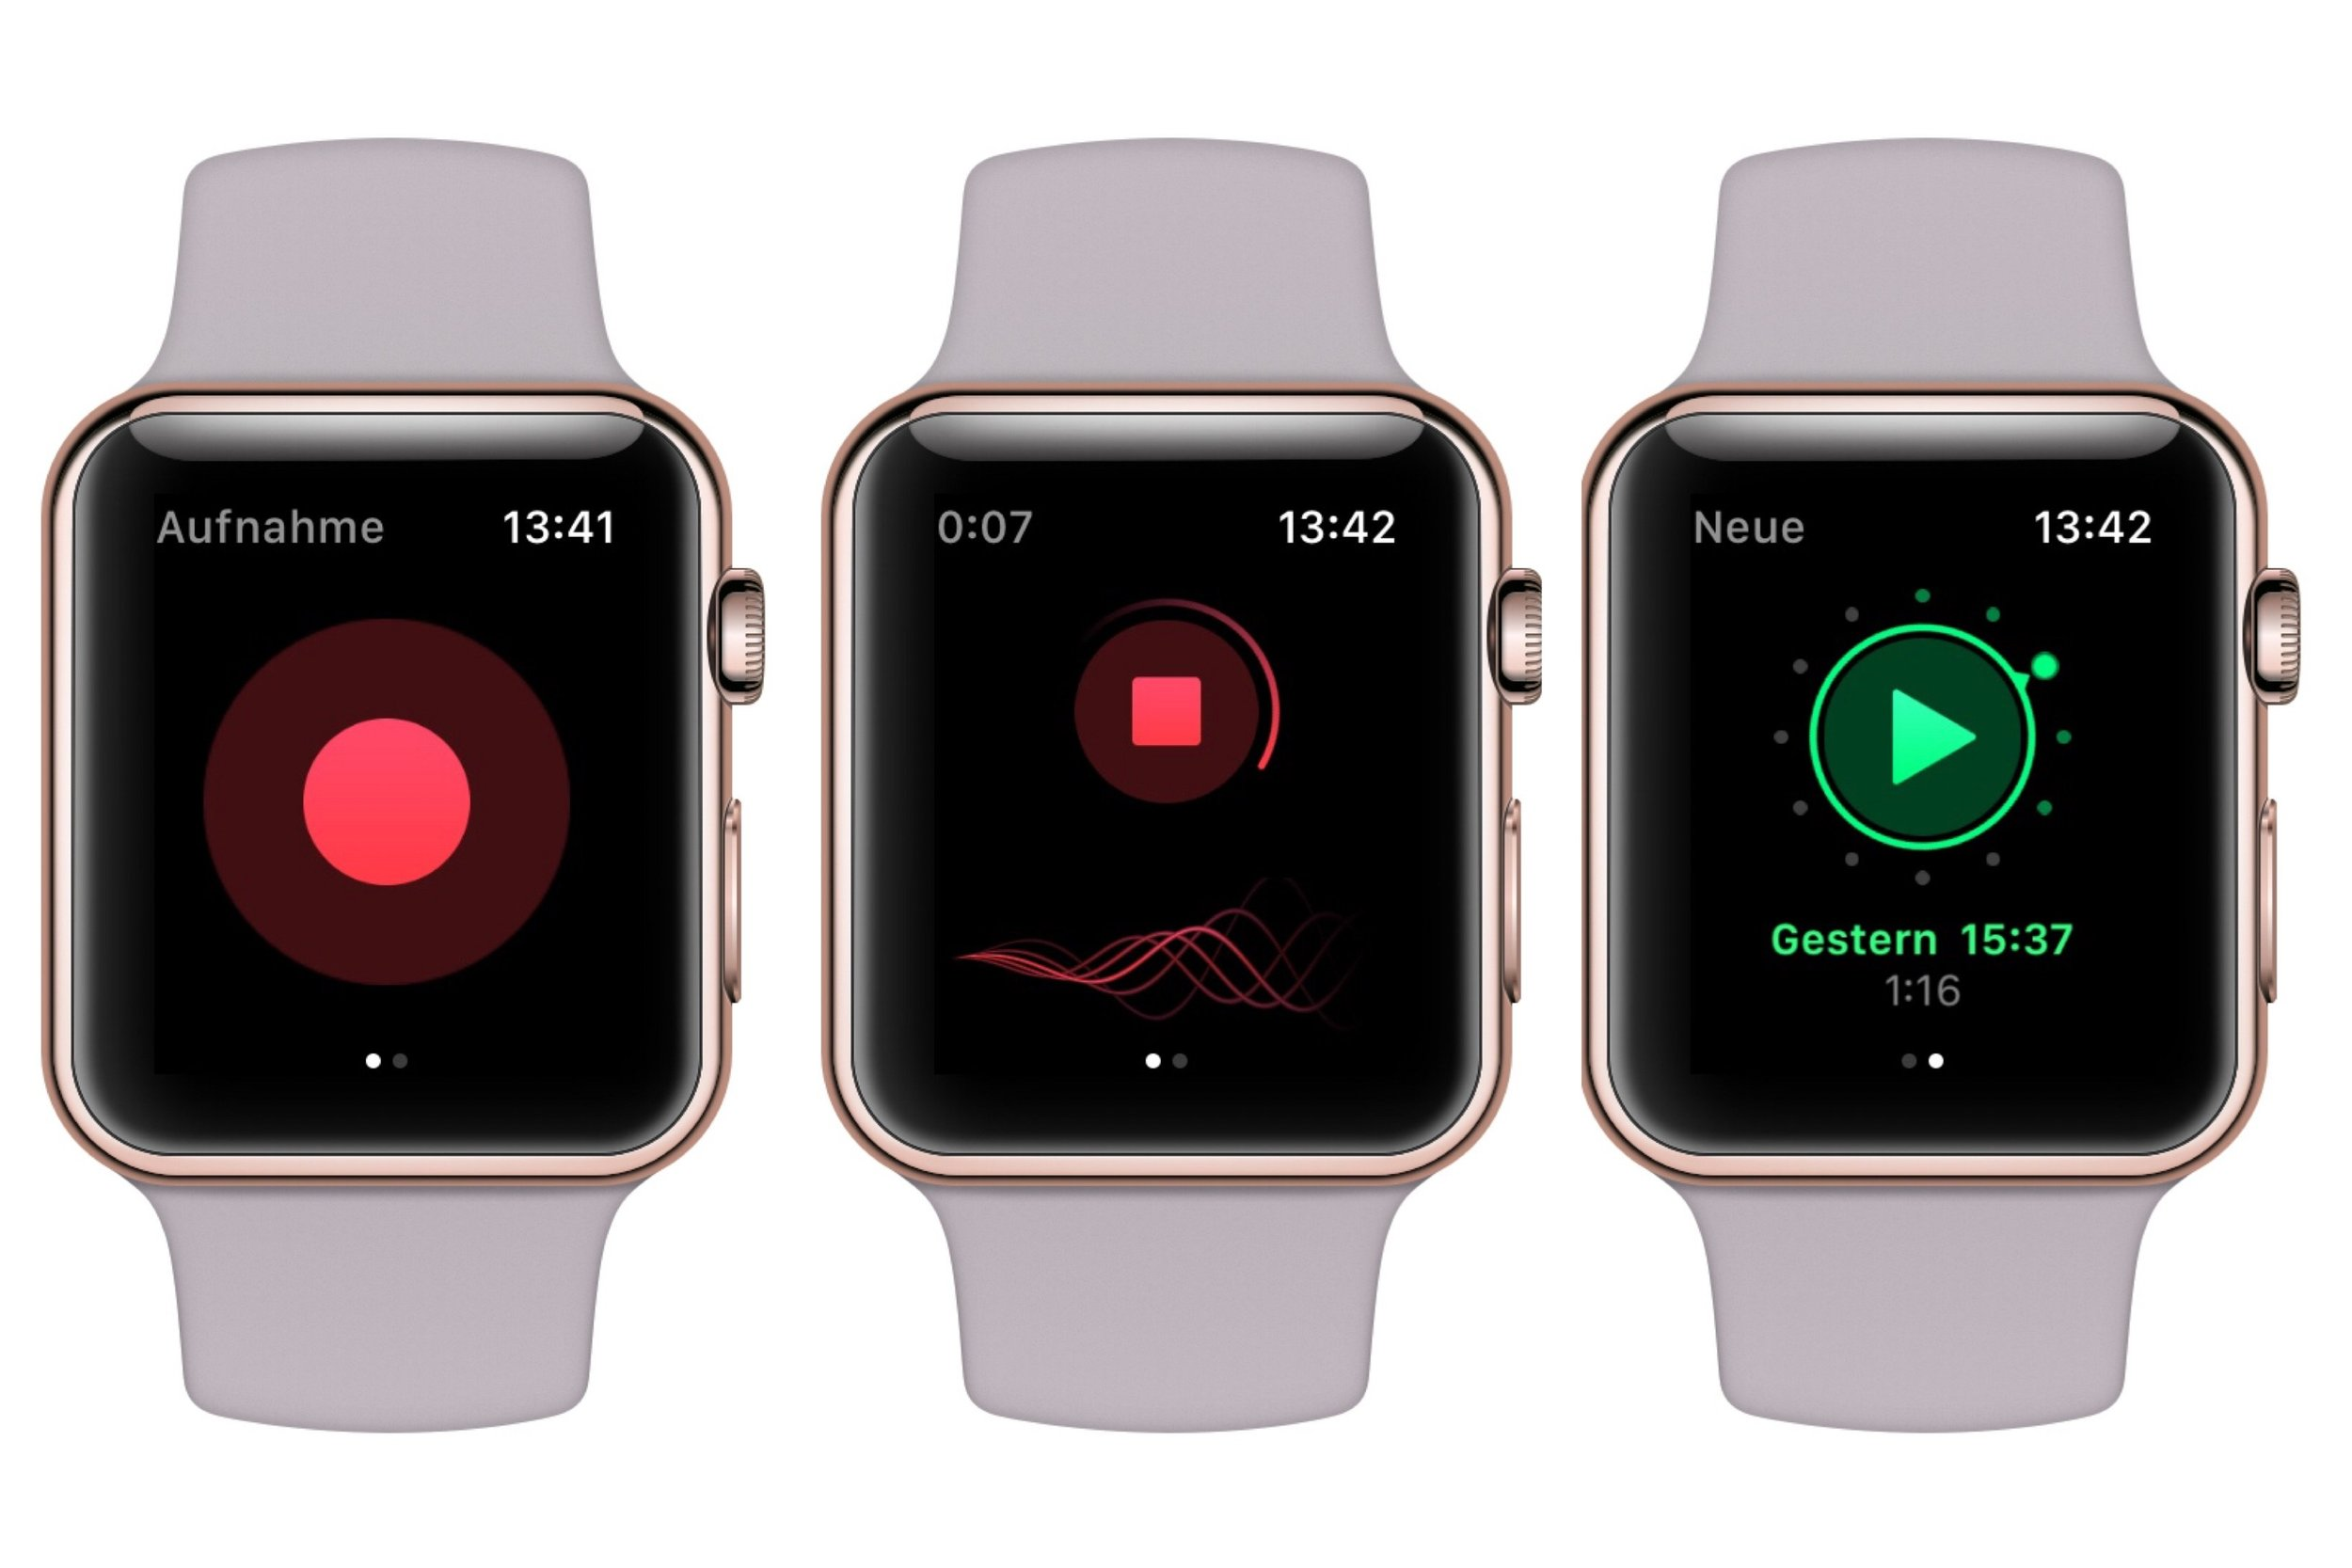 just press record on apple watch